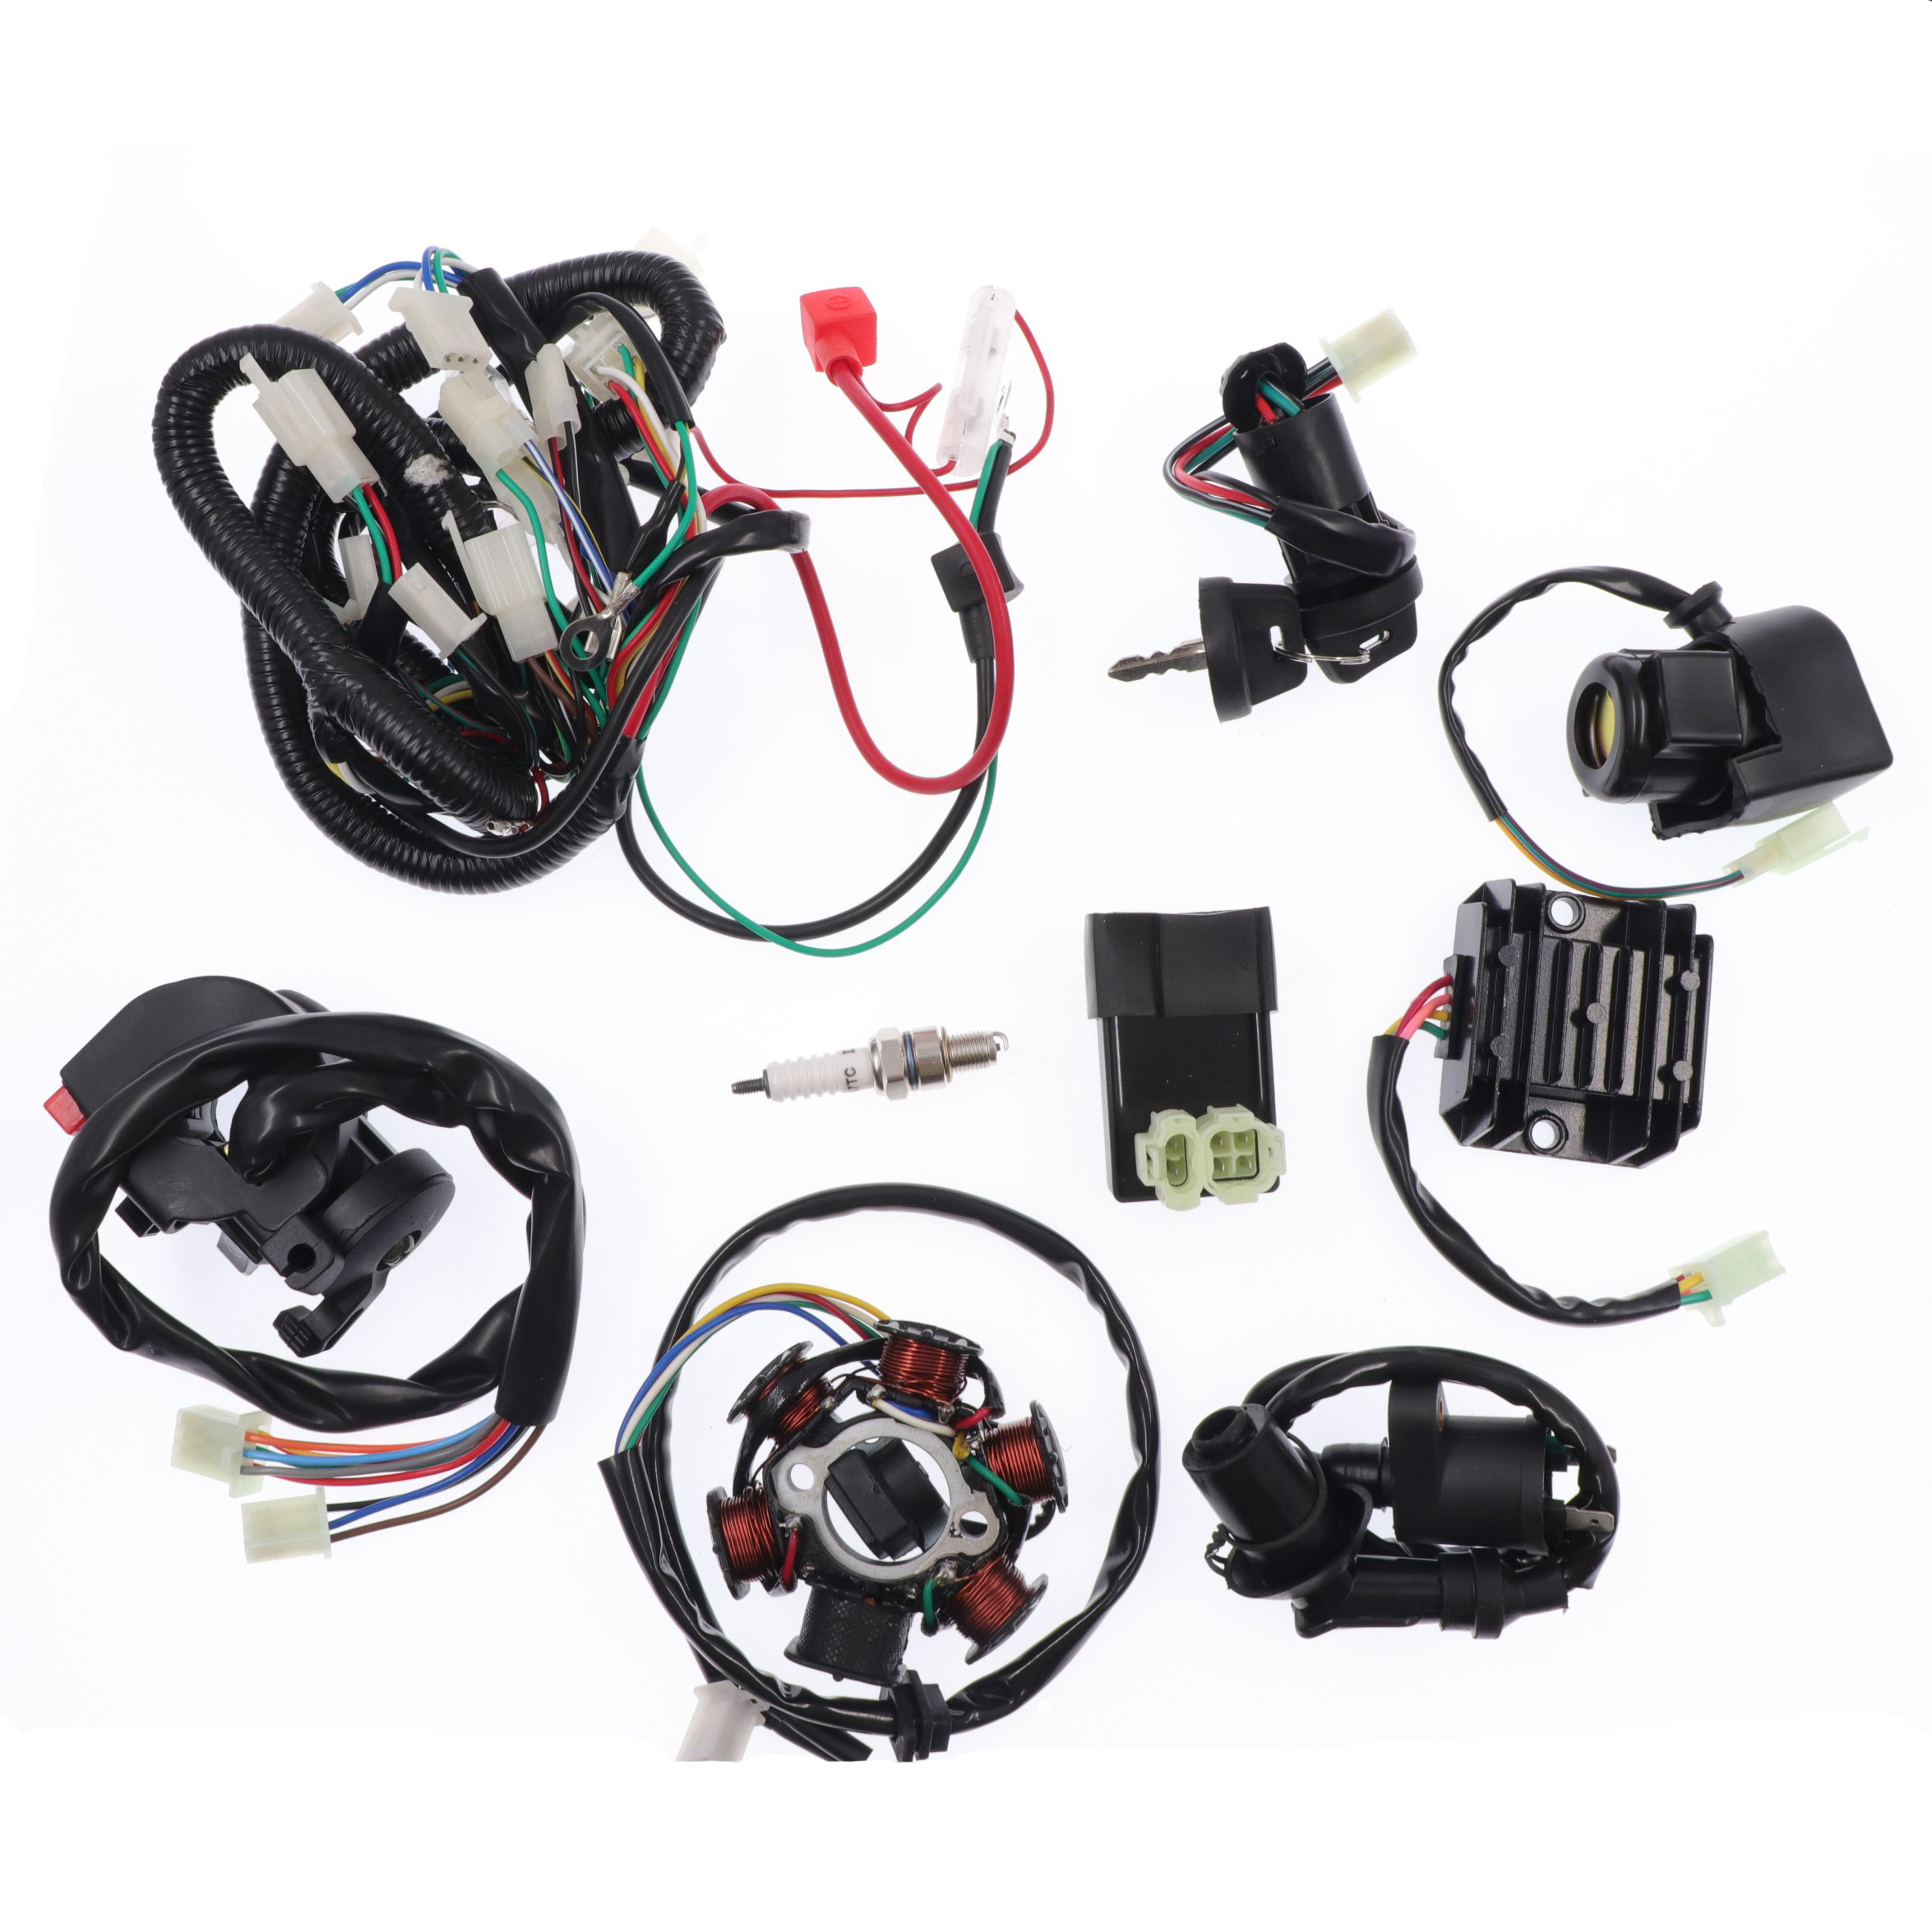 Motorcycle Full Complete Electrics Wiring Harness GY6 CDI Coil Startor For 125CC 150CC  For Dirt Bike ATV Quad Pit Bike Go Kart